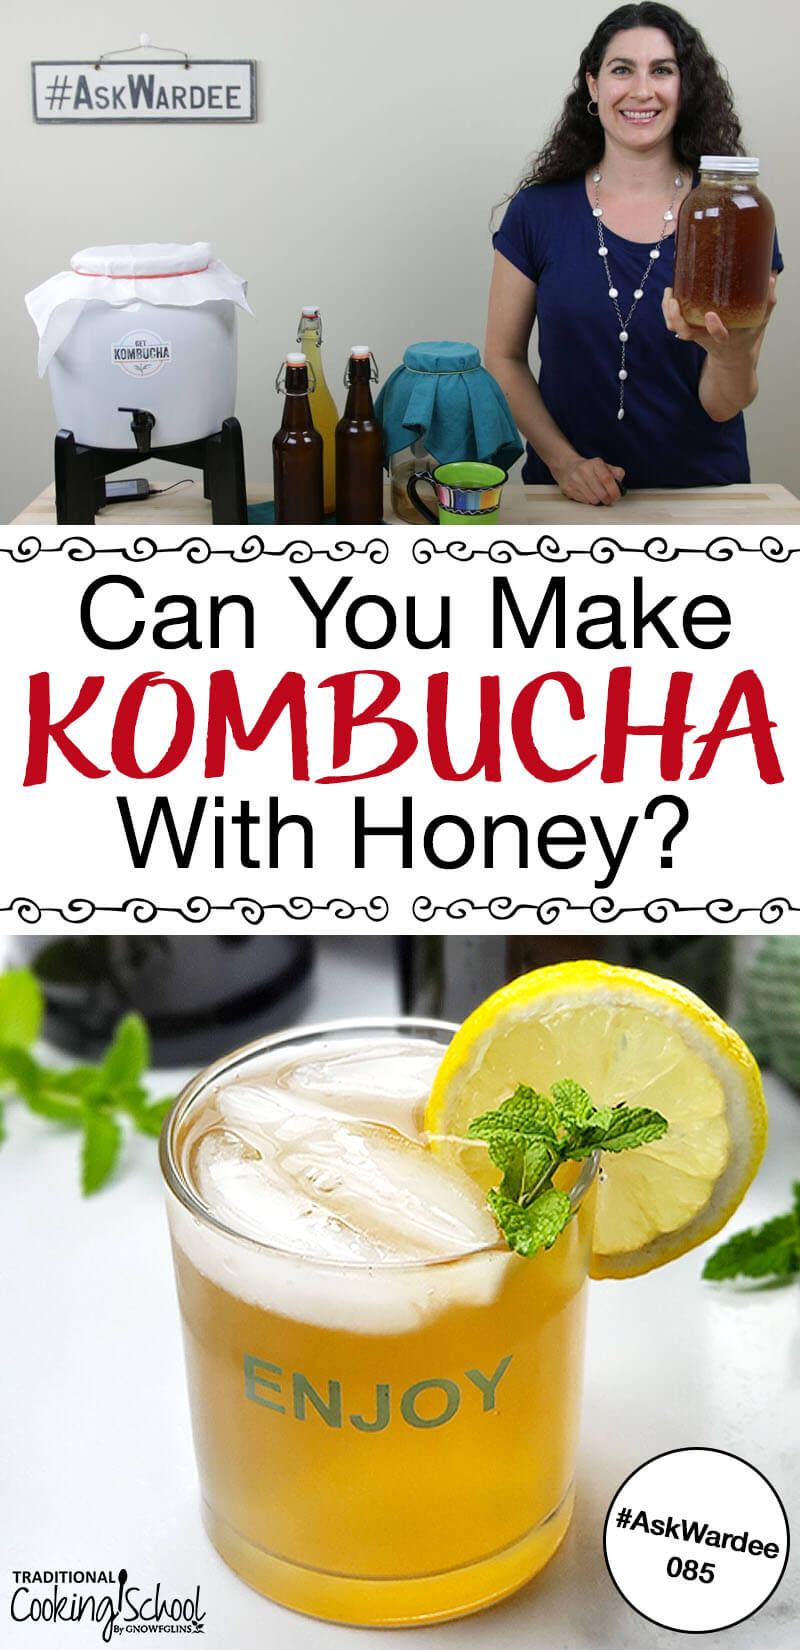 "Pinterest pin with two images. The top image is of a woman in a blue shirt holding a half gallon jar of kombucha, the bottom image is of a glass of kombucha with a lemon and mint. Text overlay says, ""Can You Make Kombucha With Honey? #AskWardee 085"""